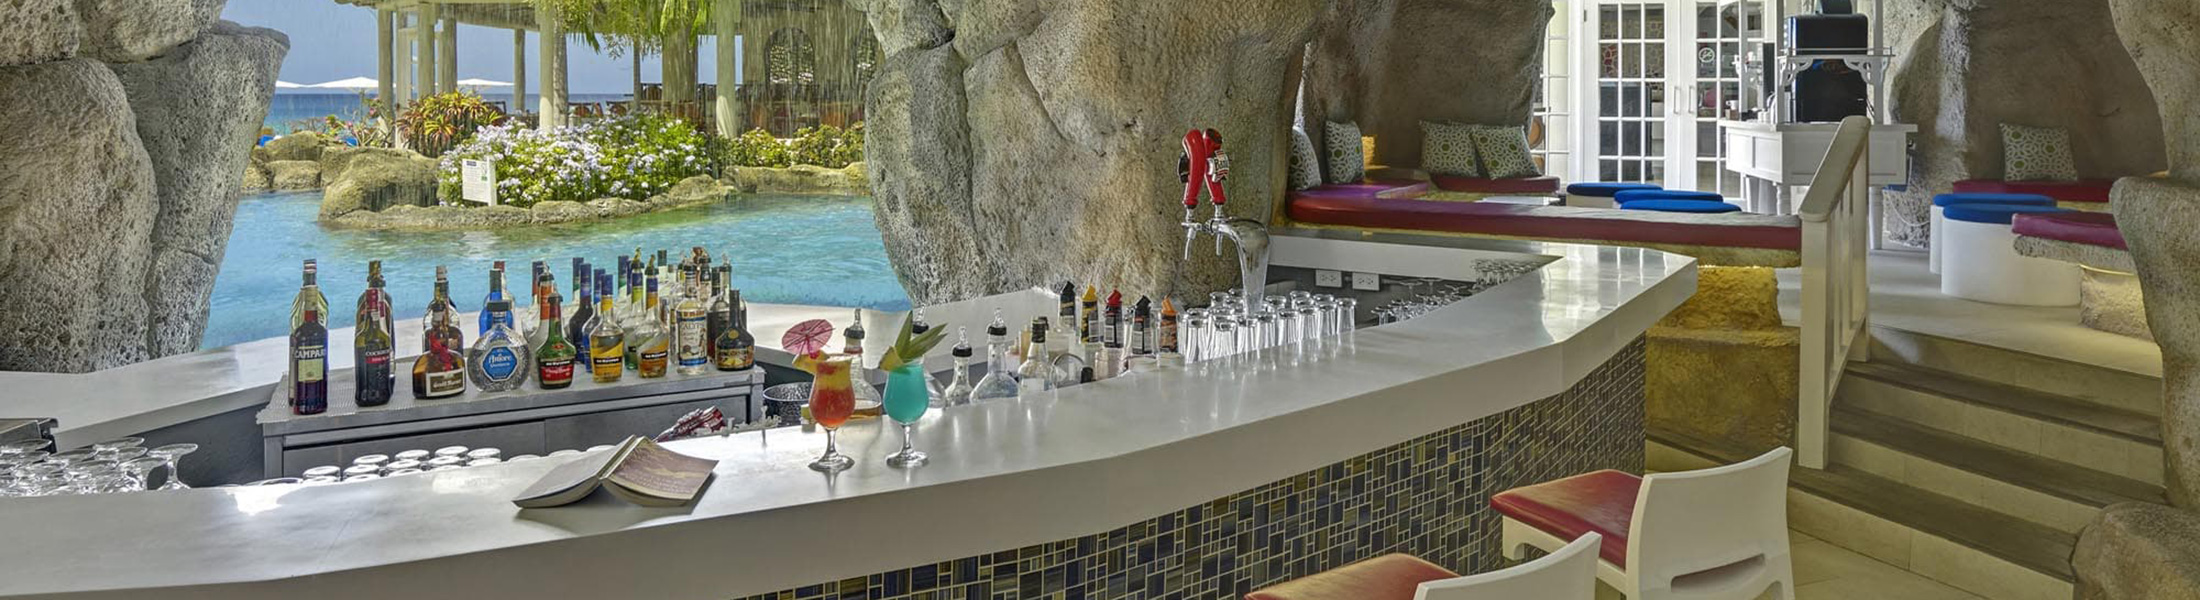 A bar inside a cave at Crystal Cove by Elegant Hotels